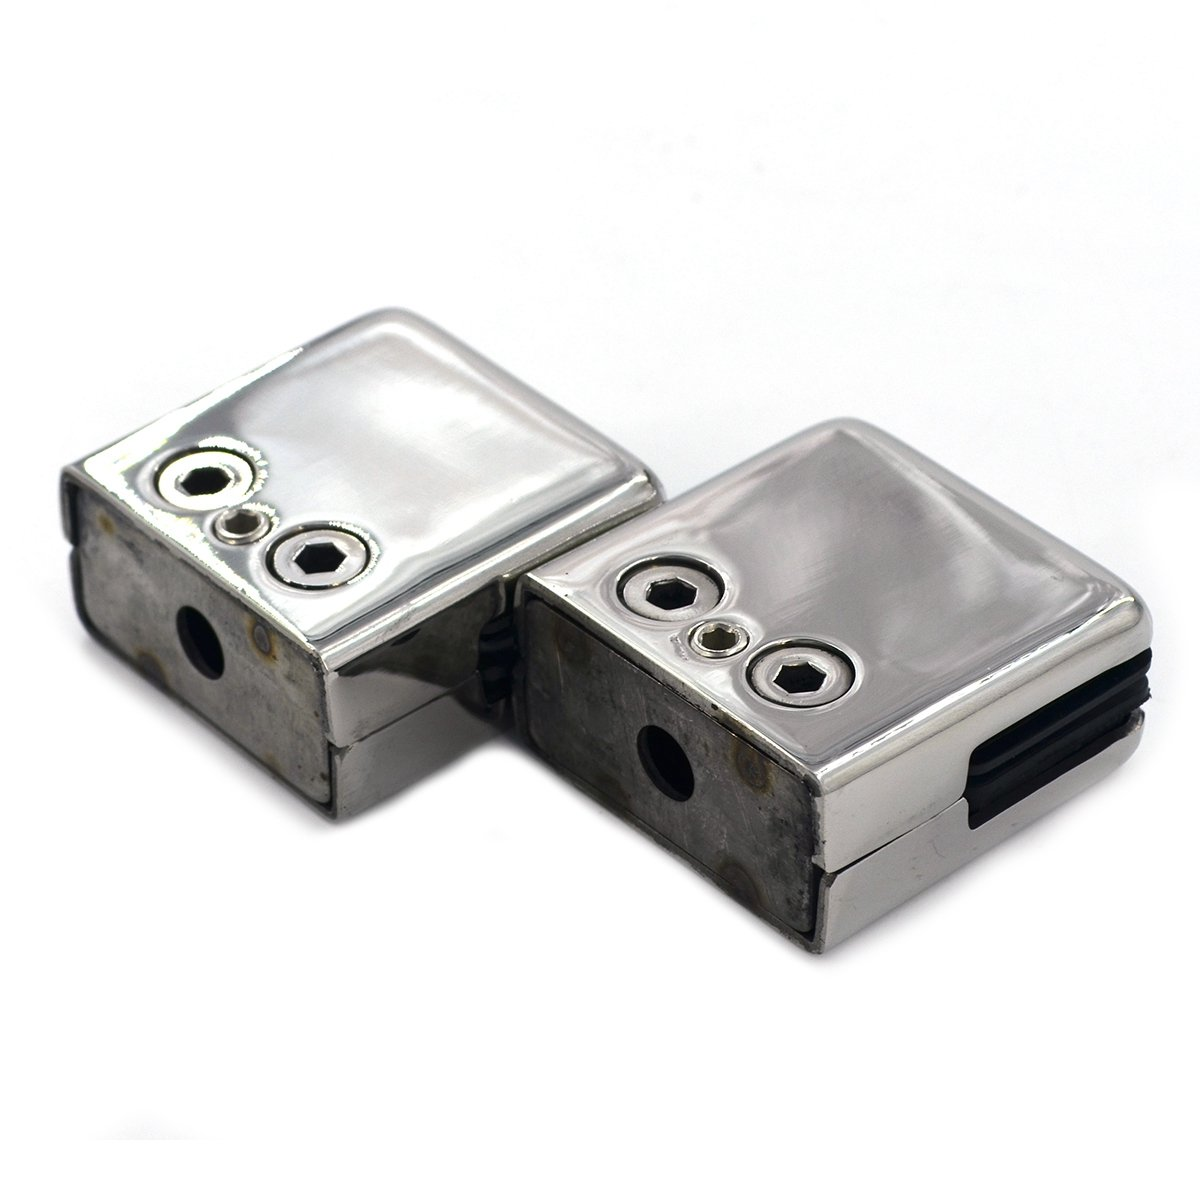 2X Stainless Steel Glass Clamp Solid Glass Shelf Clamp Holder Bracket Clip Support Fits for 6-8 mm Thick Glass Wall Mount Home Bathroom